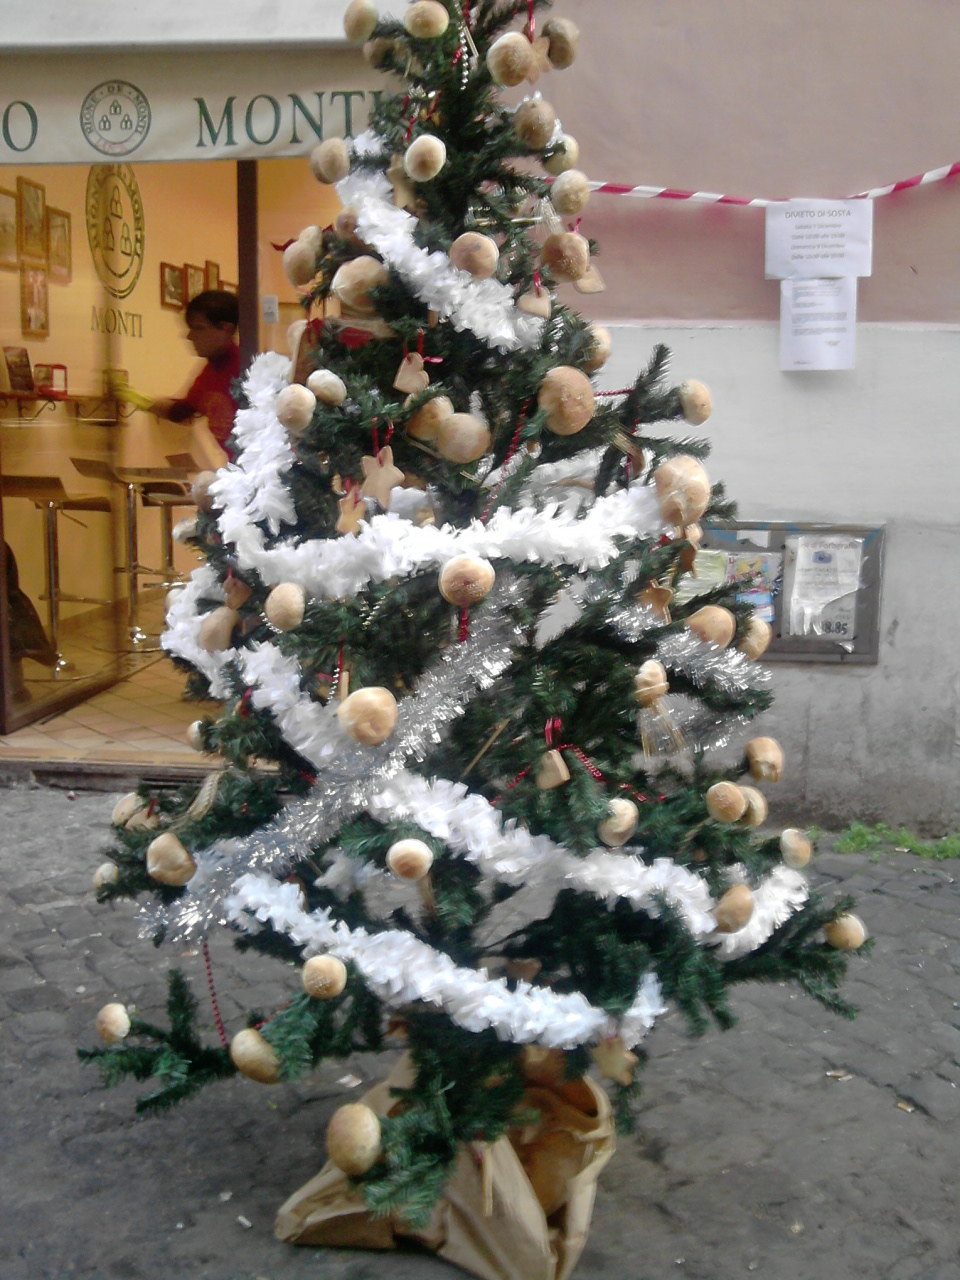 Christmas tree decored with bread by Larcheex-Clicexia